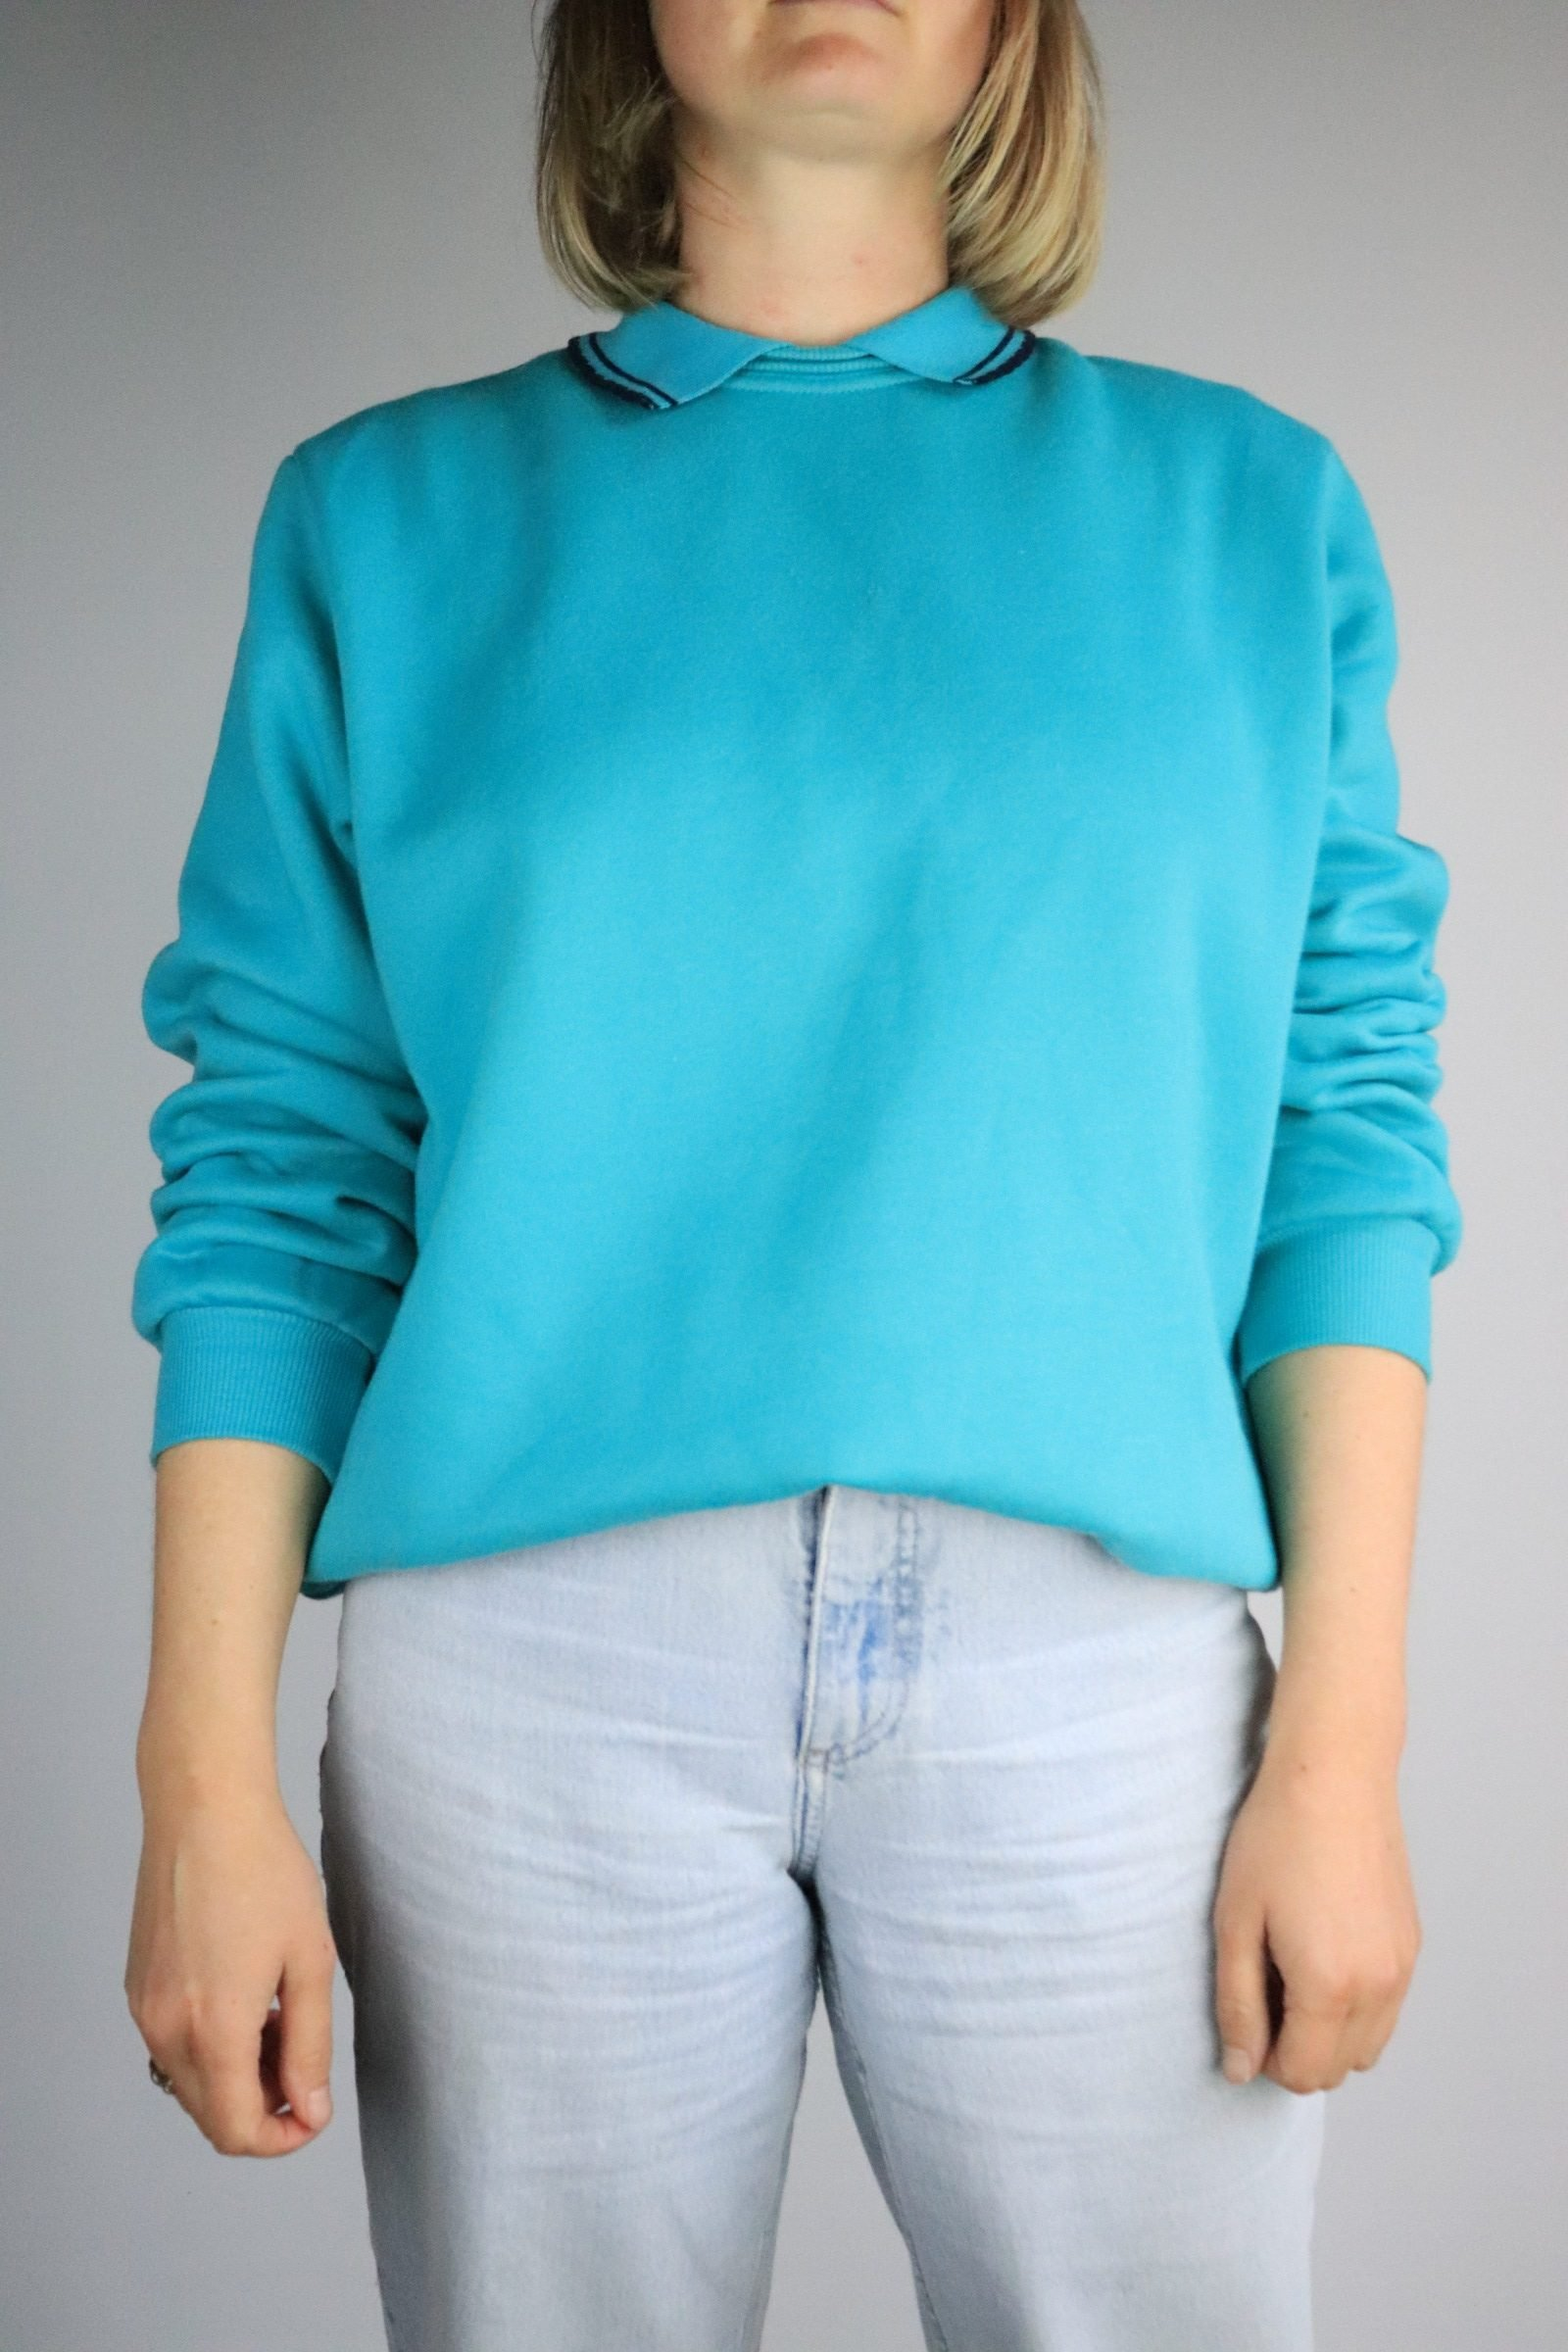 Early 90s teal jumper